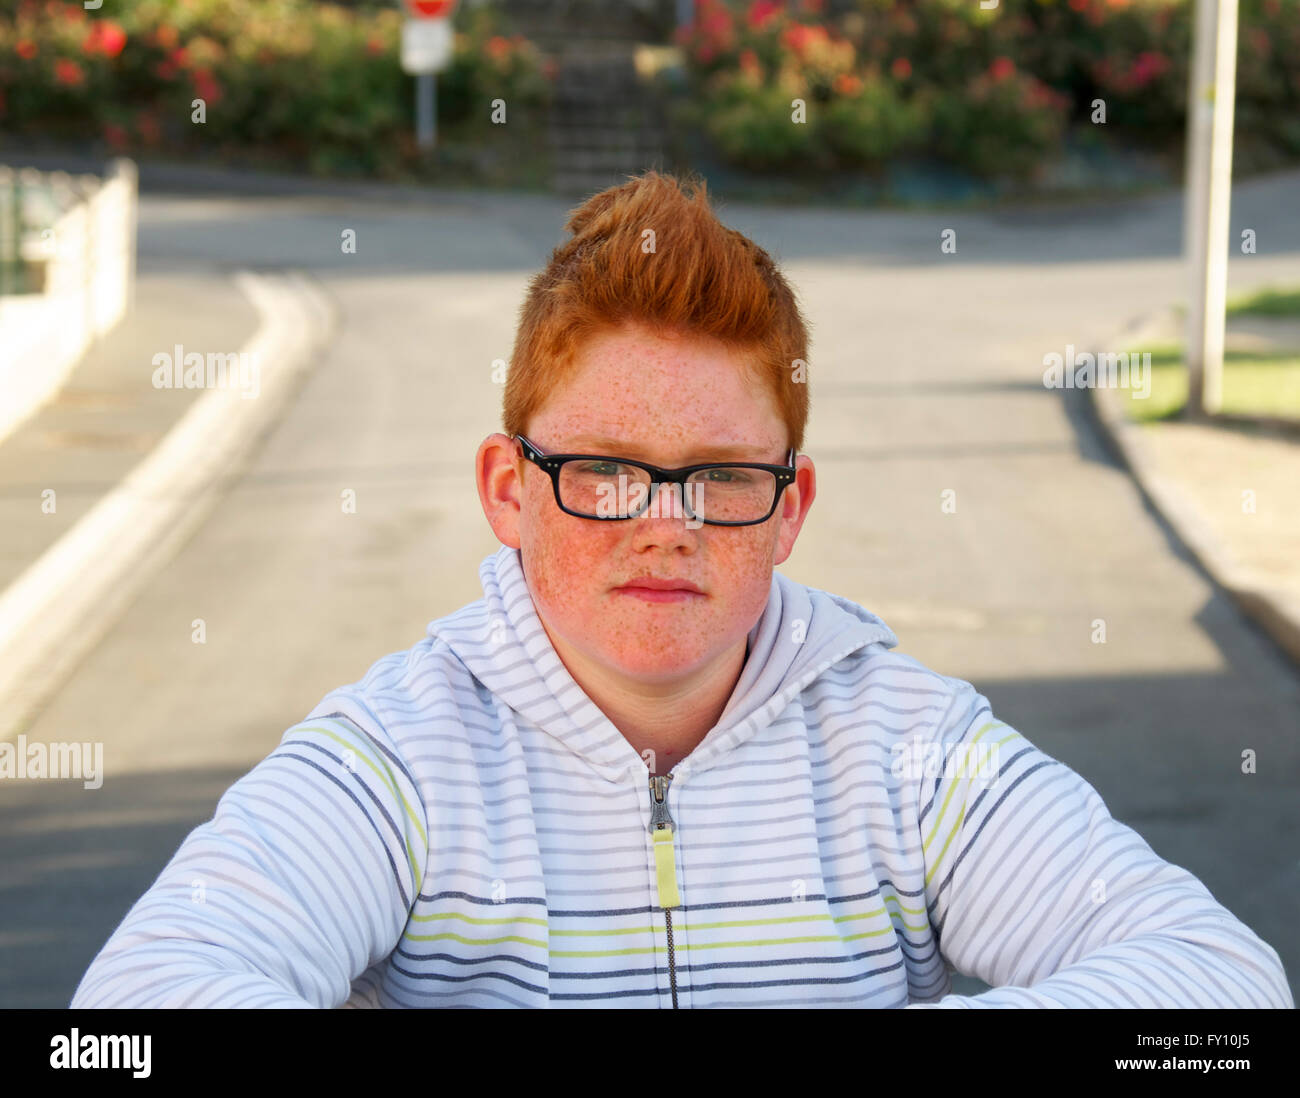 A ginger haired Breton boy with glasses - Stock Image